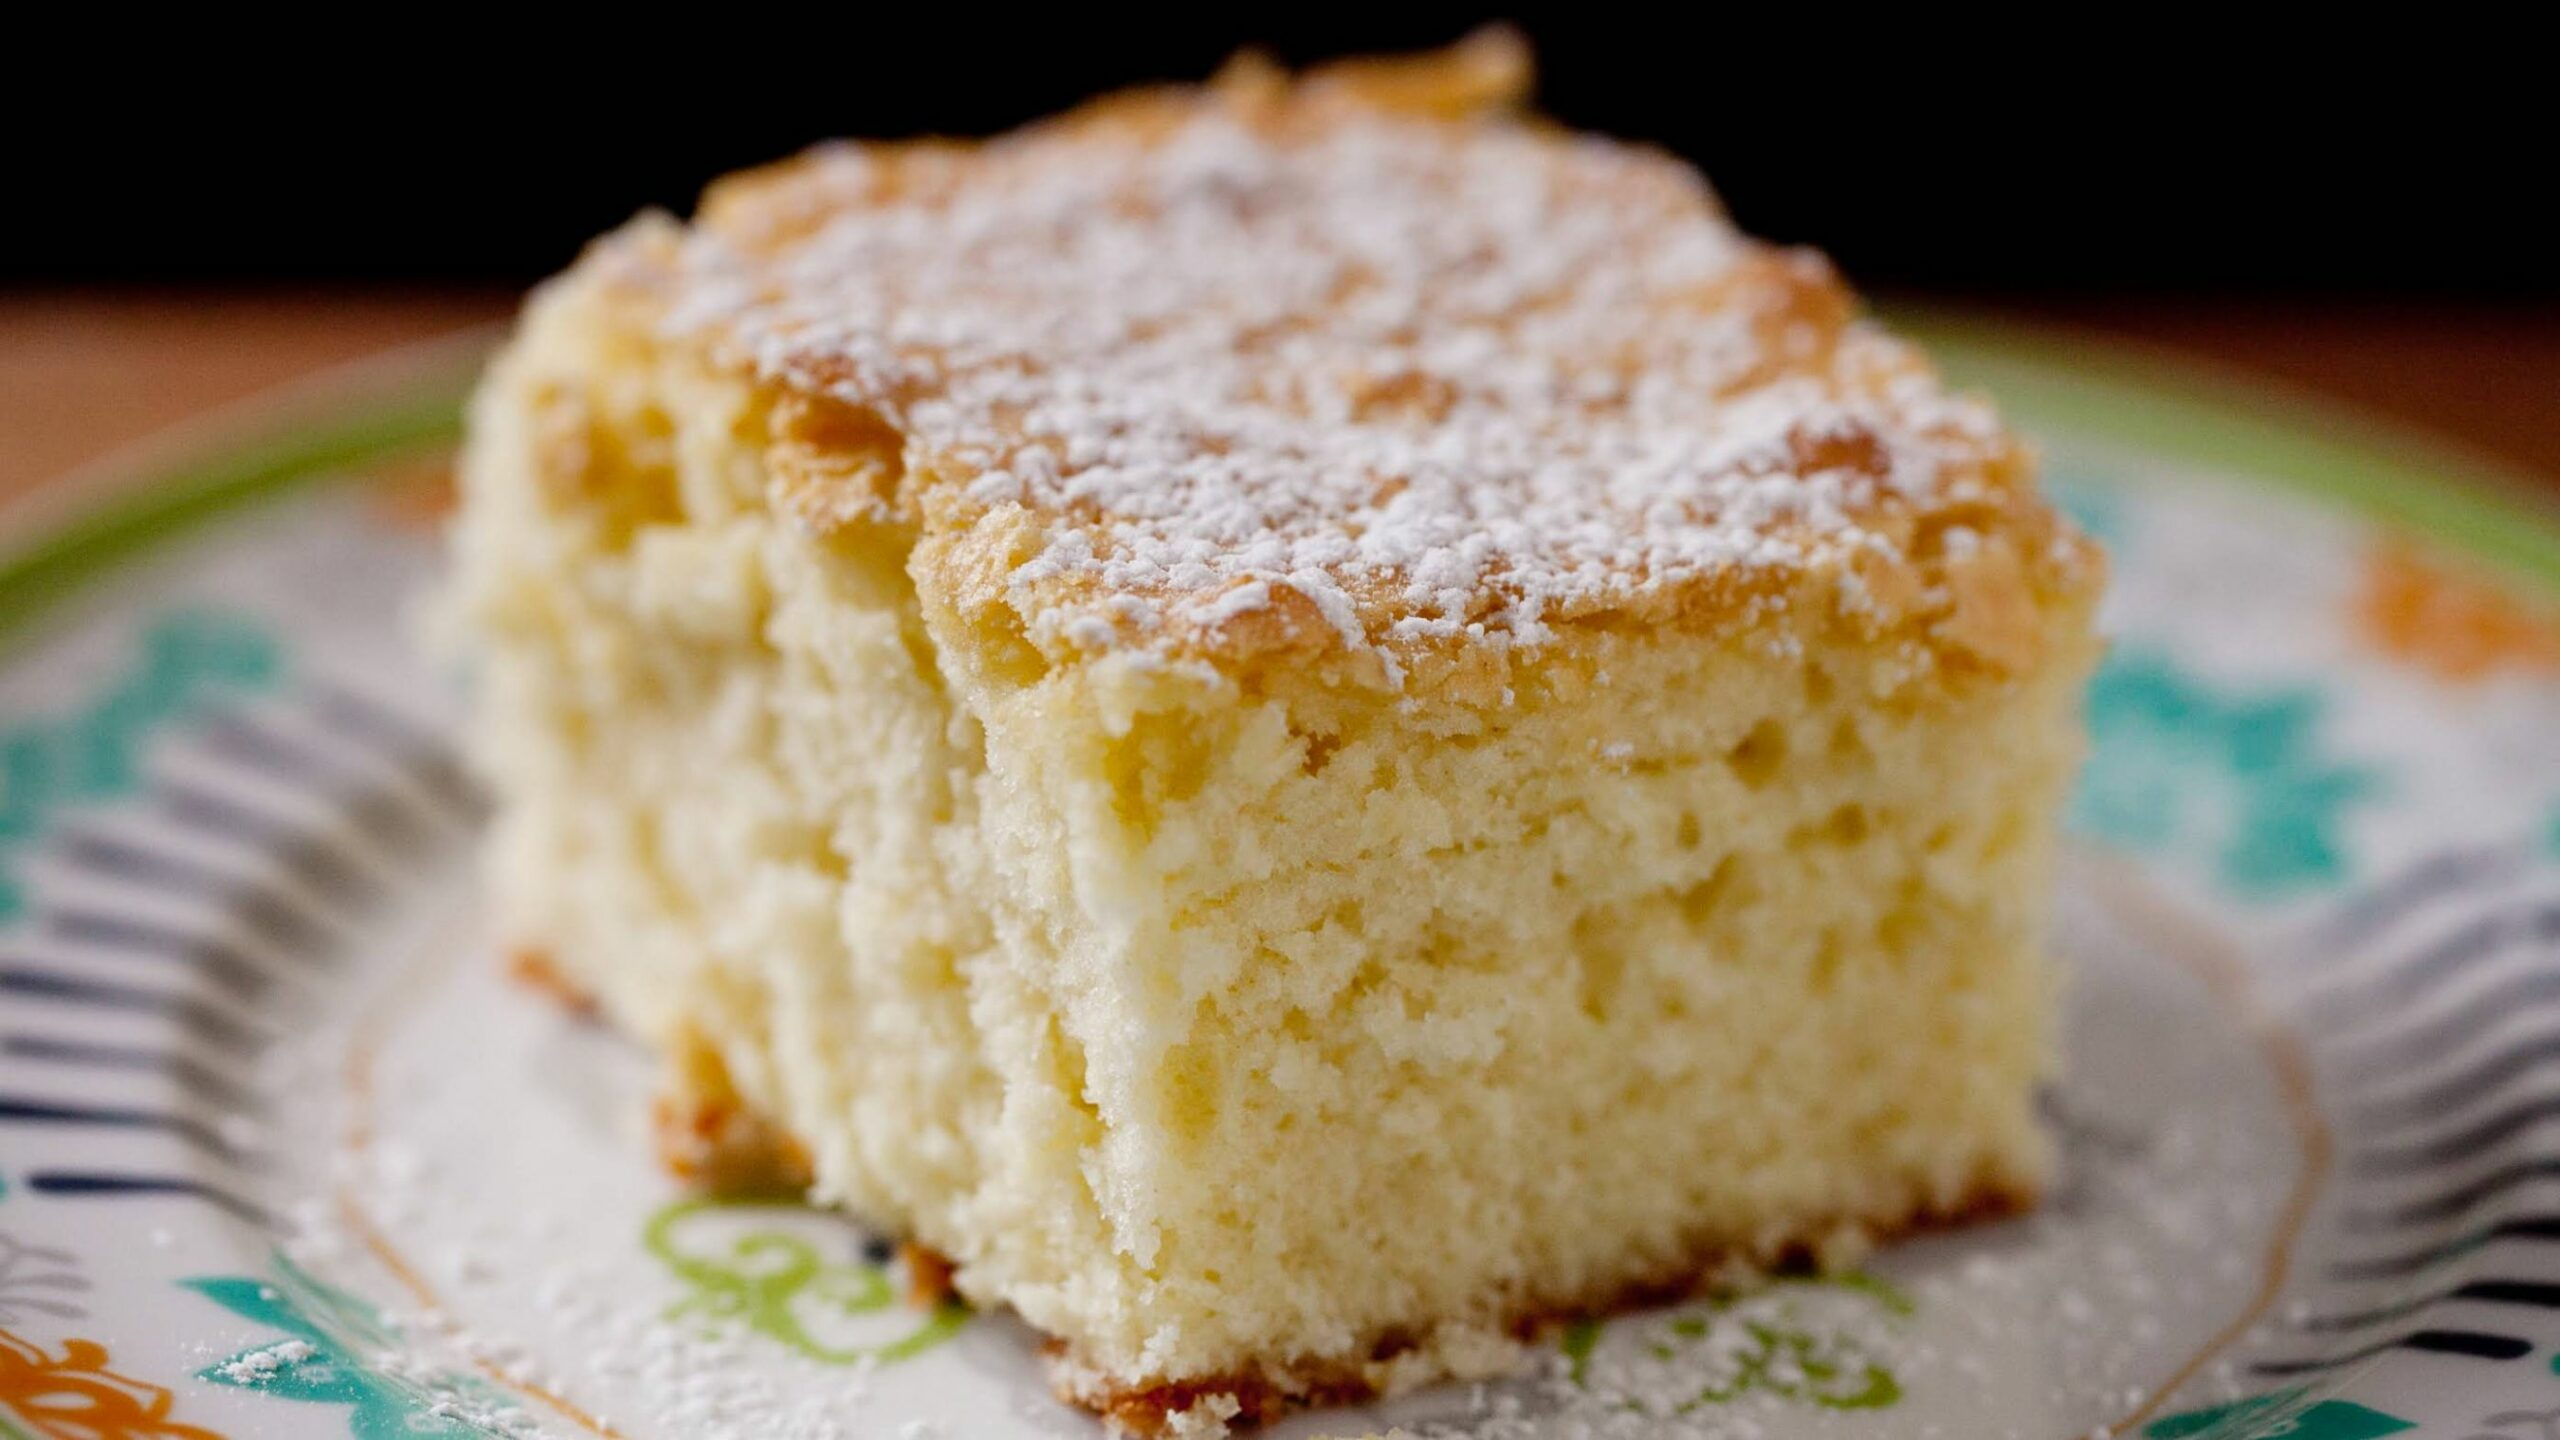 Whipping Cream Cake - Dessert Recipes That Use Heavy Whipping Cream